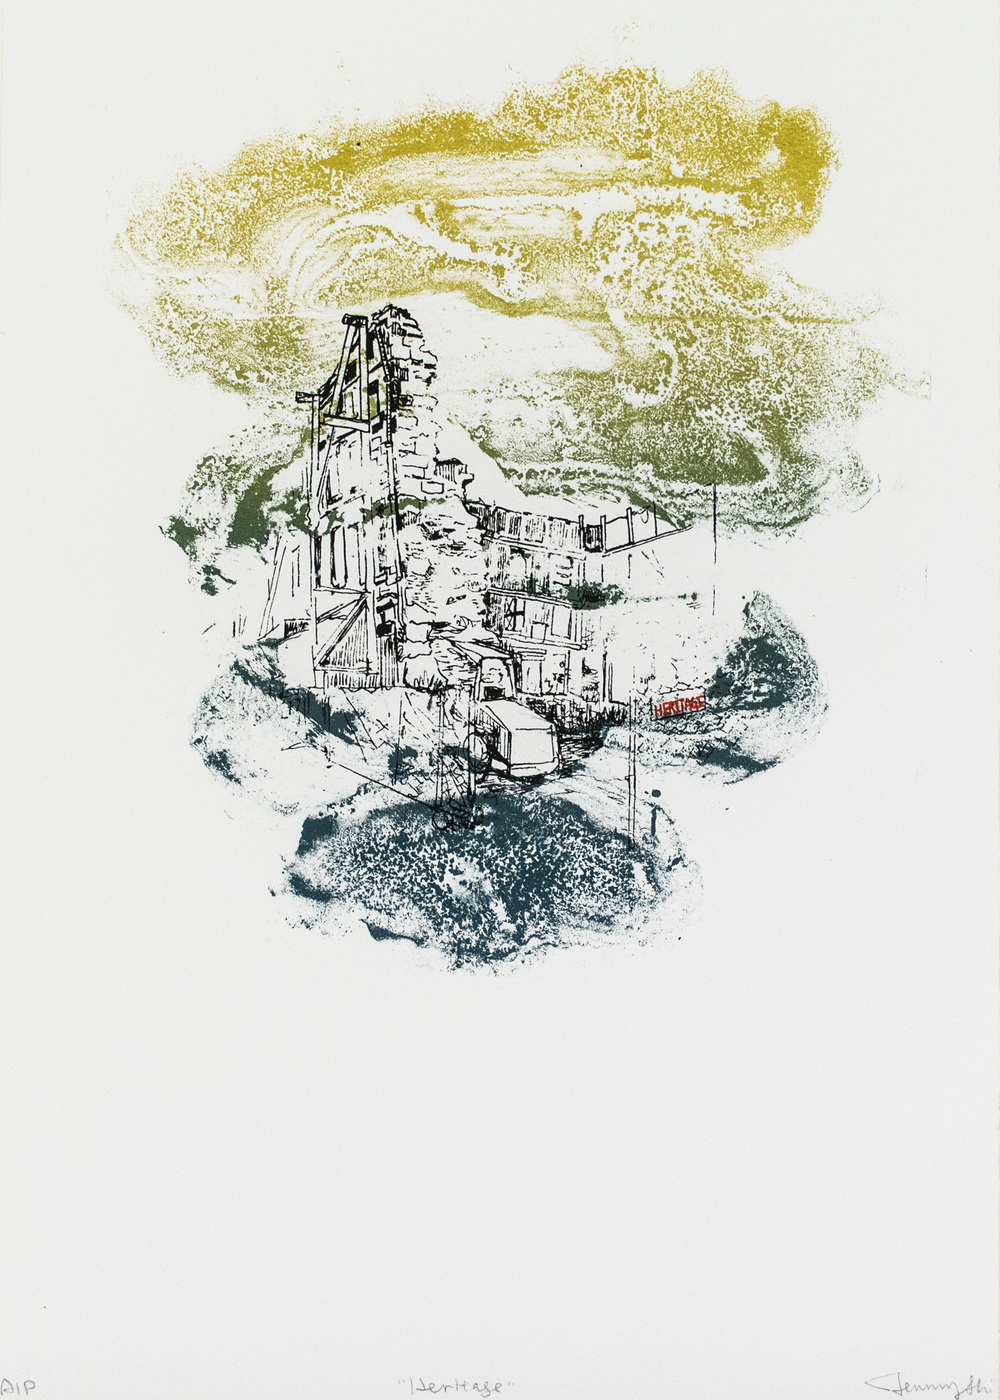 Arrival , Silkscreen (丝网), 18x26 inches, edition of 36, 2014